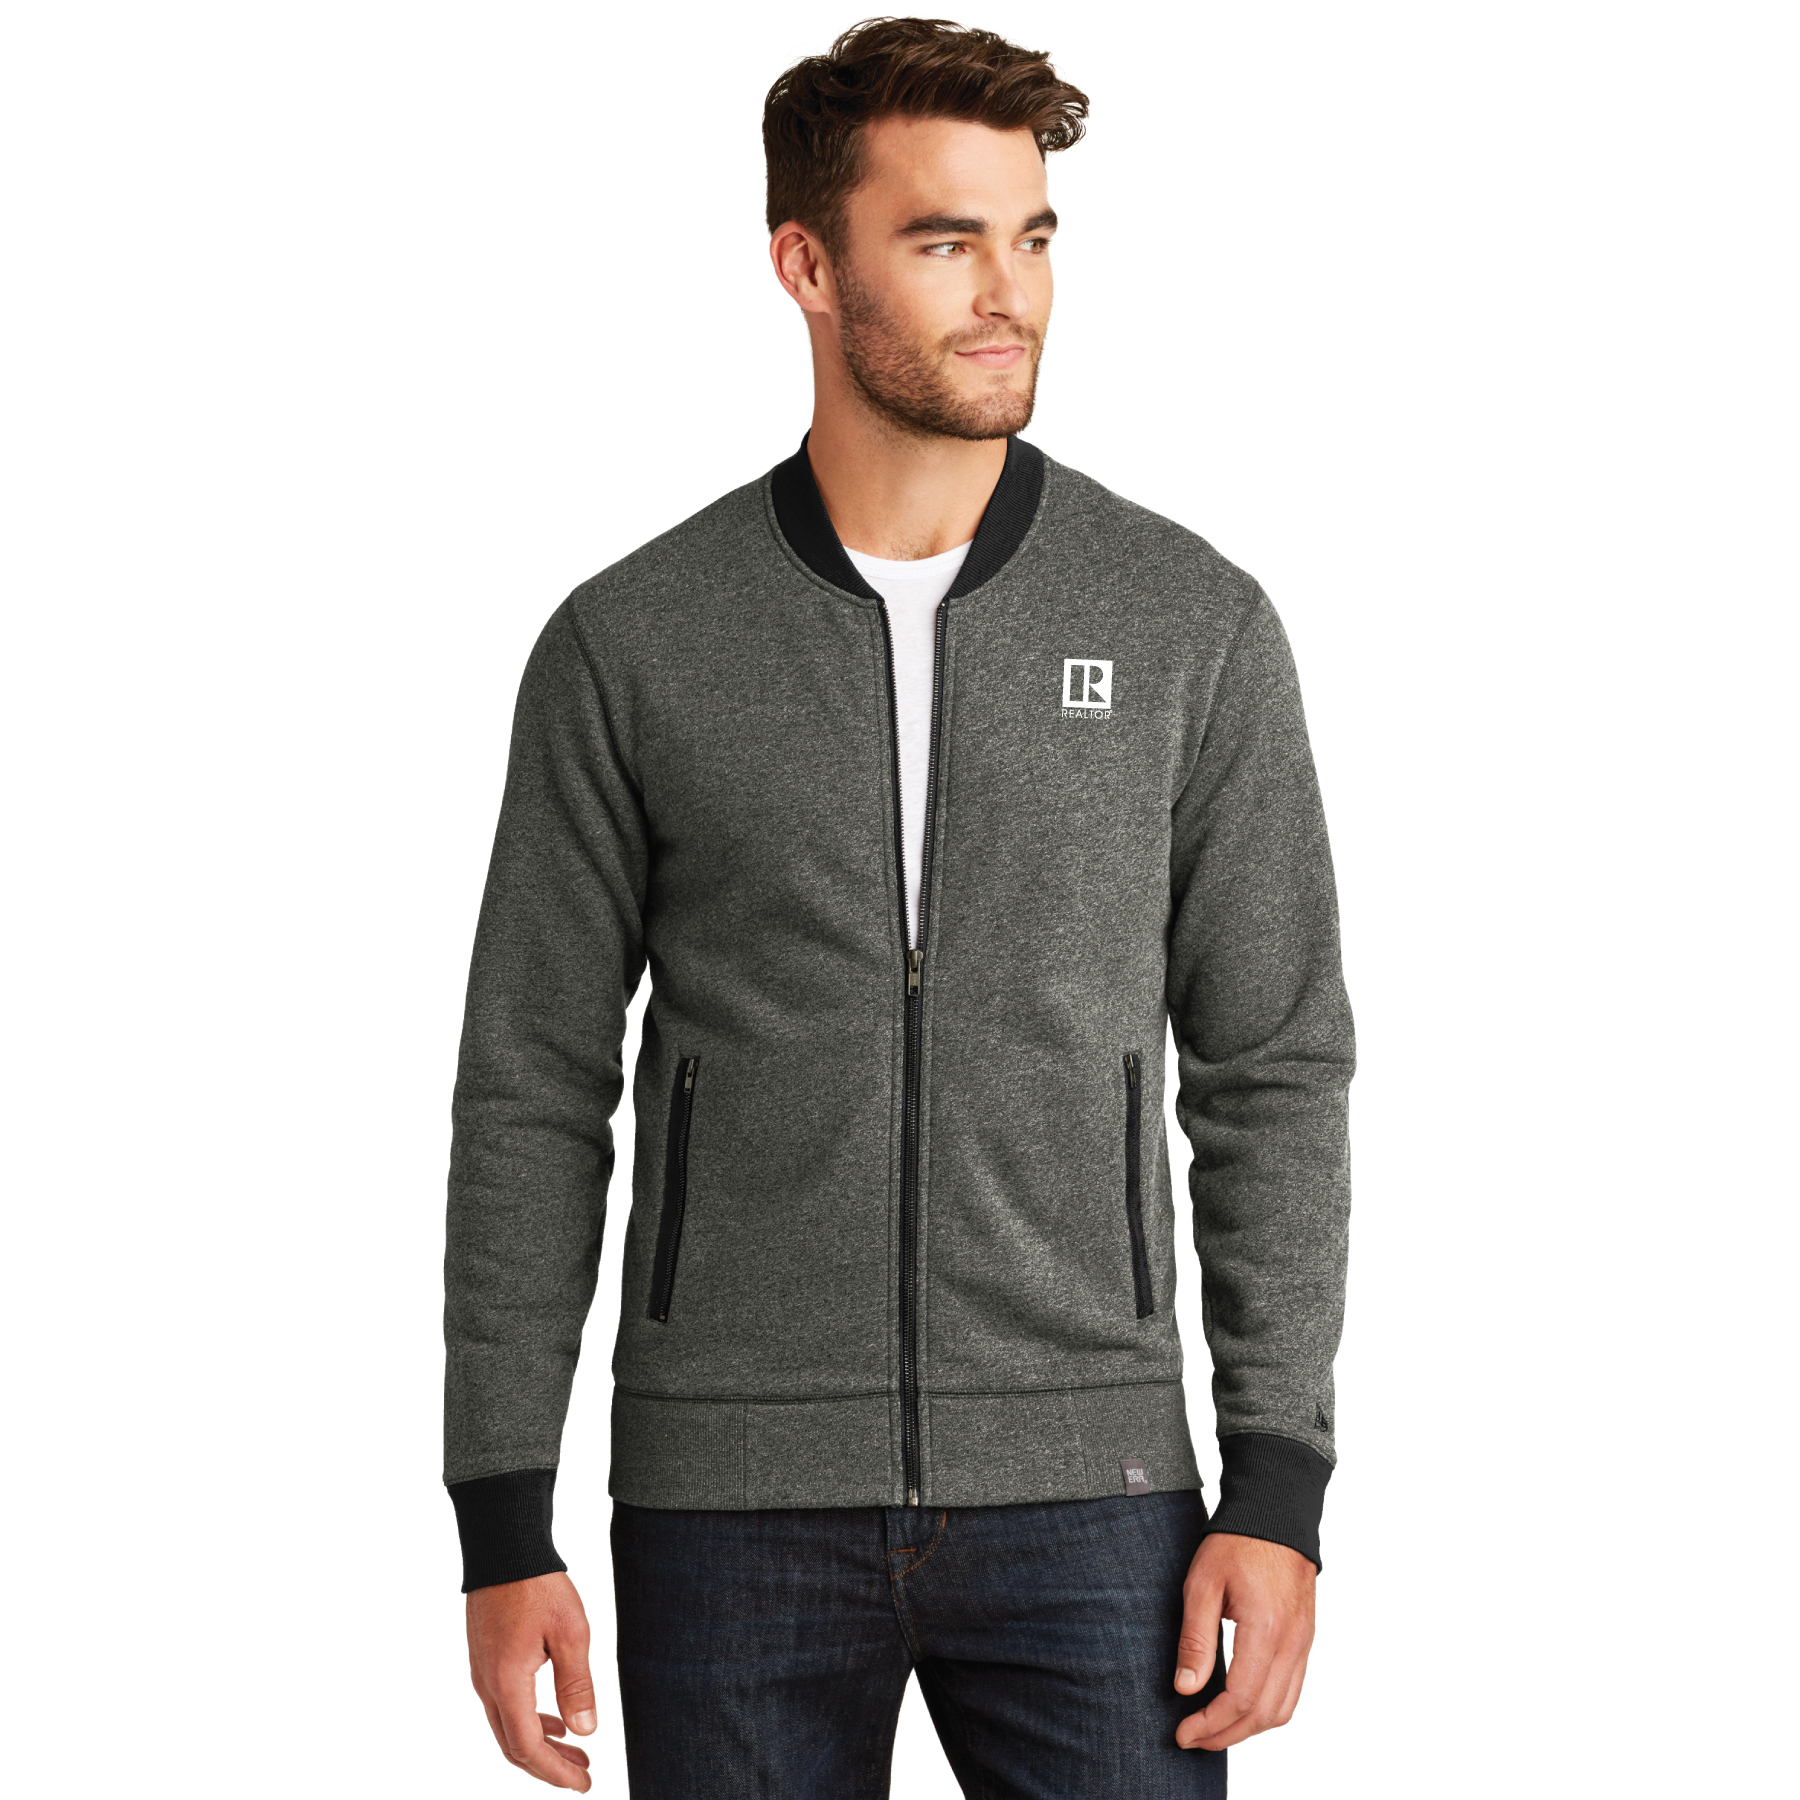 New Era French Terry Baseball Full-Zip french, terry, baseball, jackets, zip, zipper